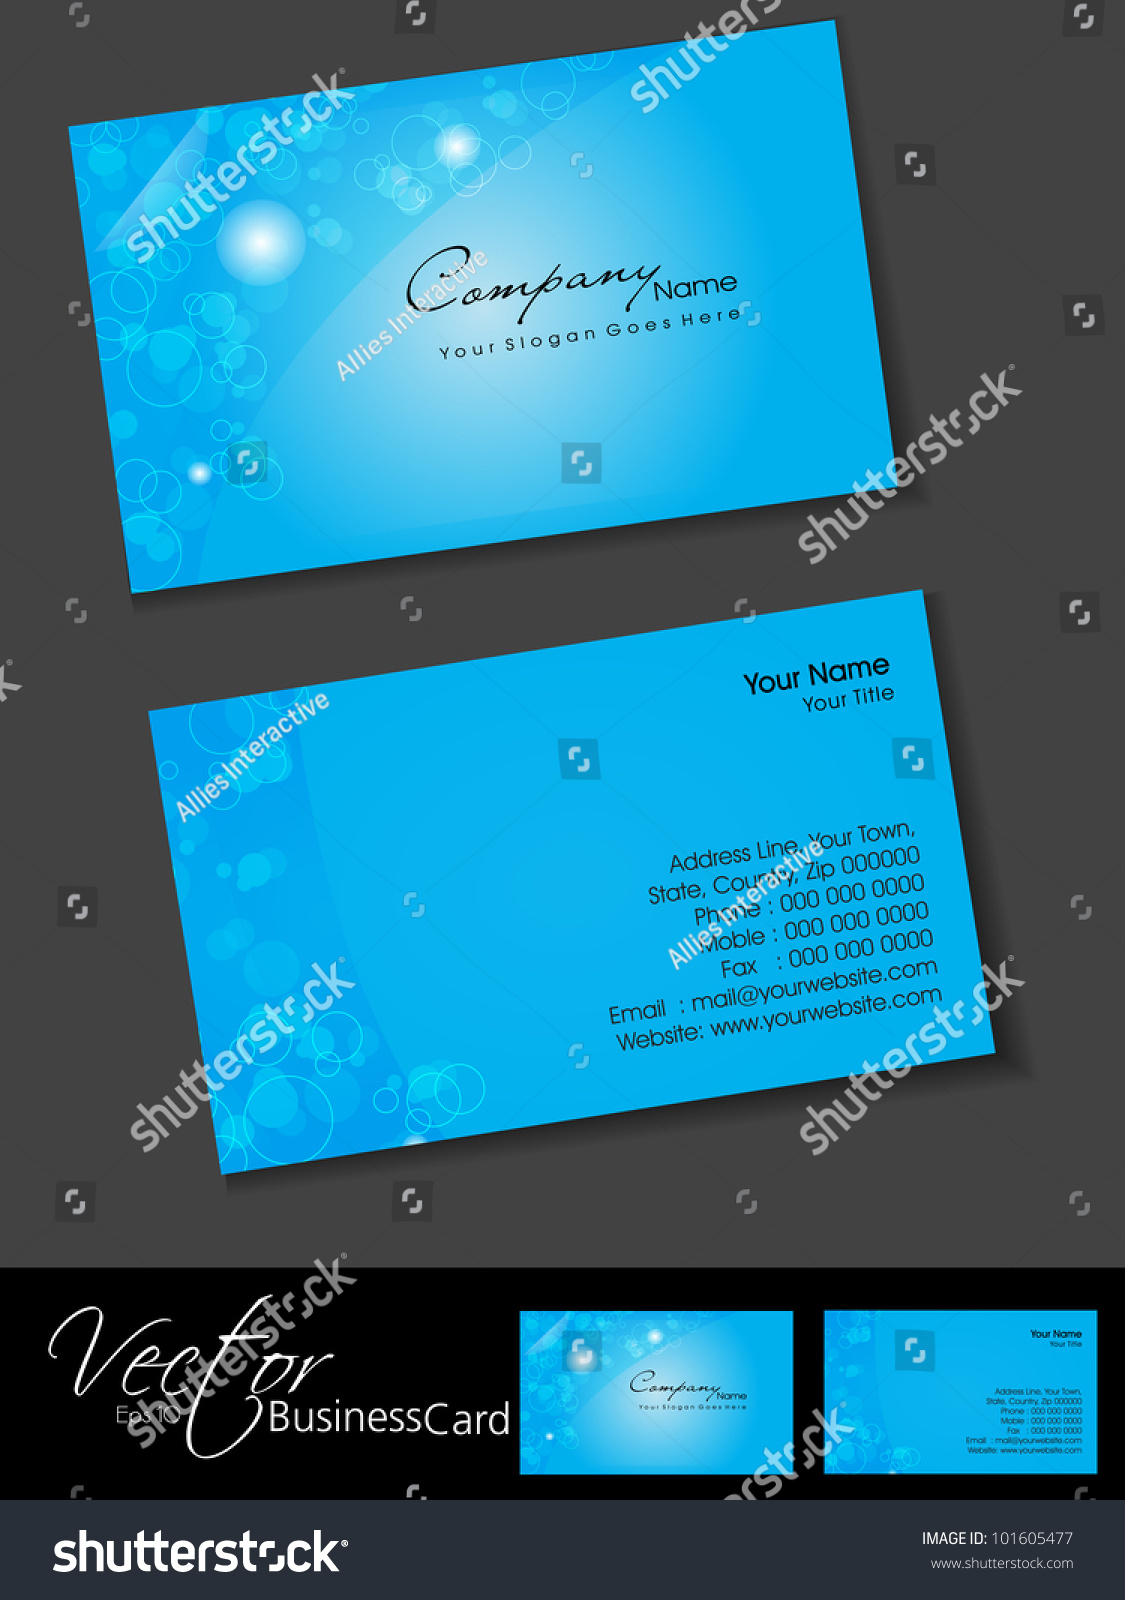 Professional Business Cards Template Visiting Card Stock Vector ...